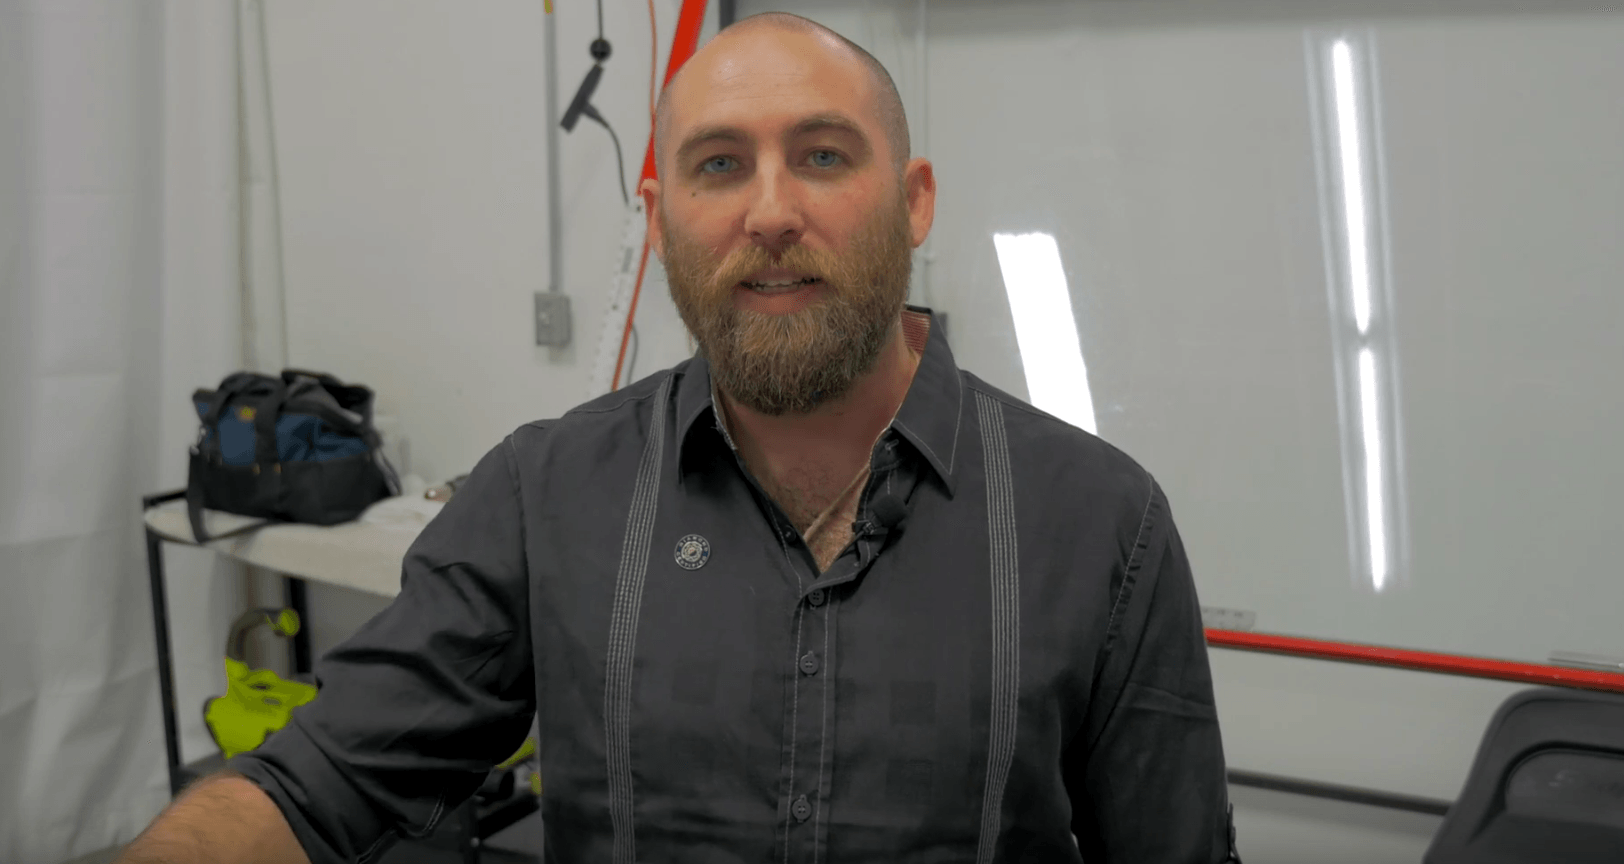 Jeremy Creager, Founder of Perfect Darkness Inc